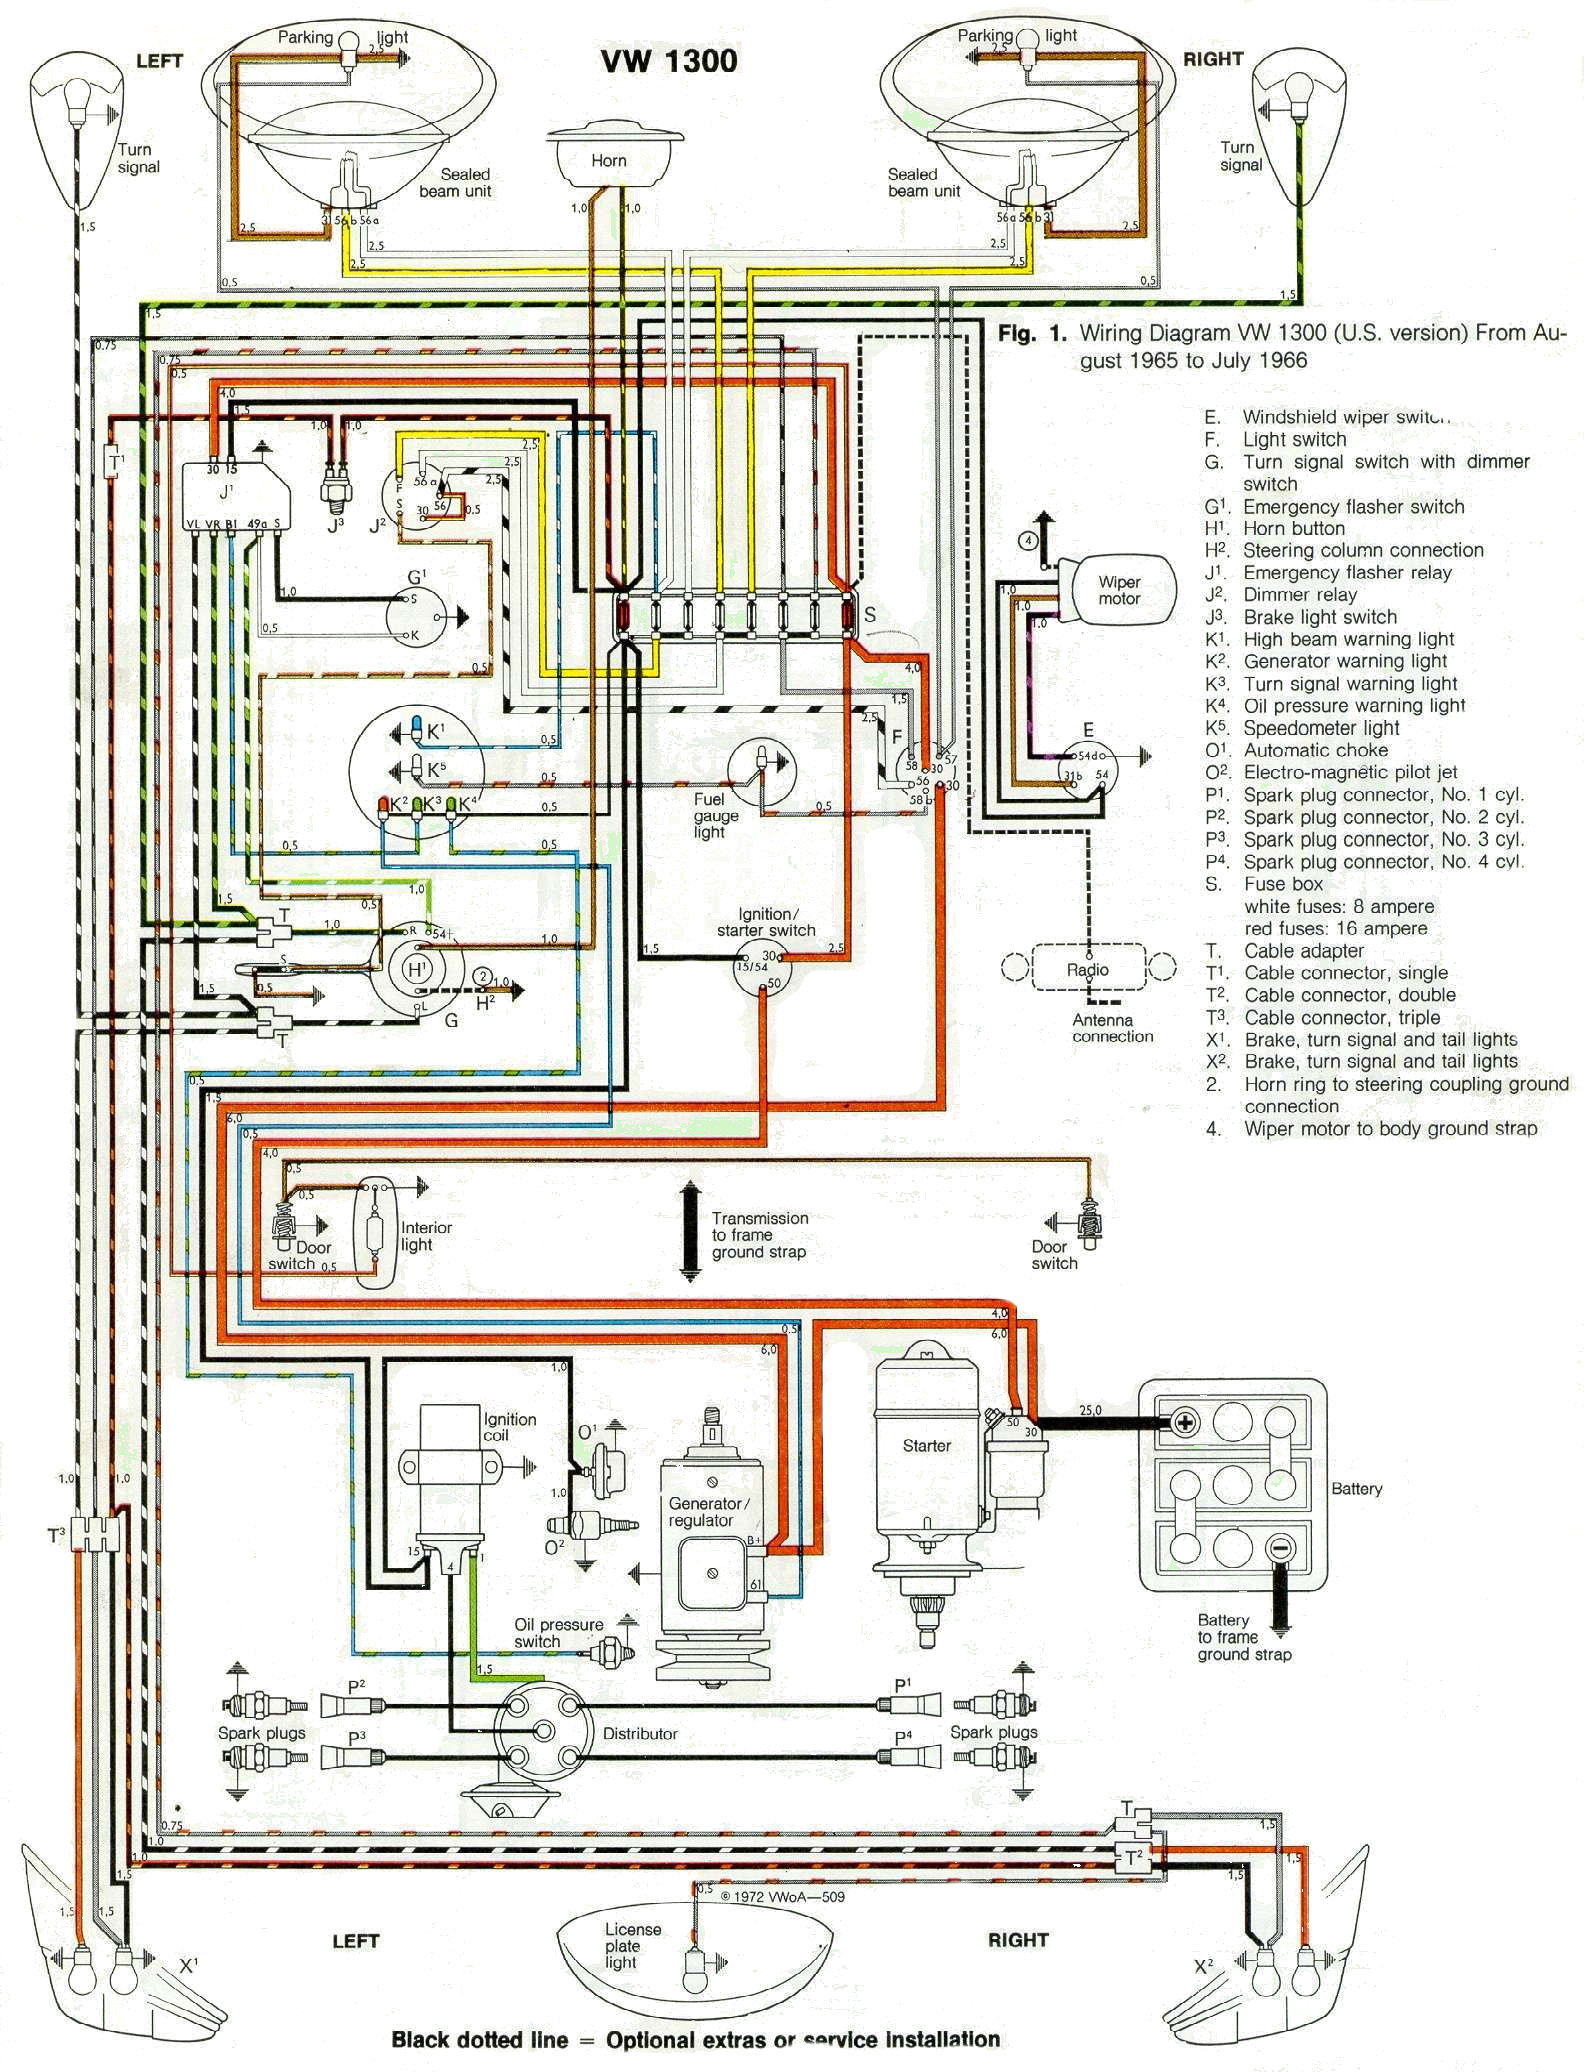 Type 1 Vw Engine Wiring Diagram Schemes 73 Beetle Free Picture Schematic Ignition Detailed Schematics Rh Highcliffemedicalcentre Com 1600cc Tin